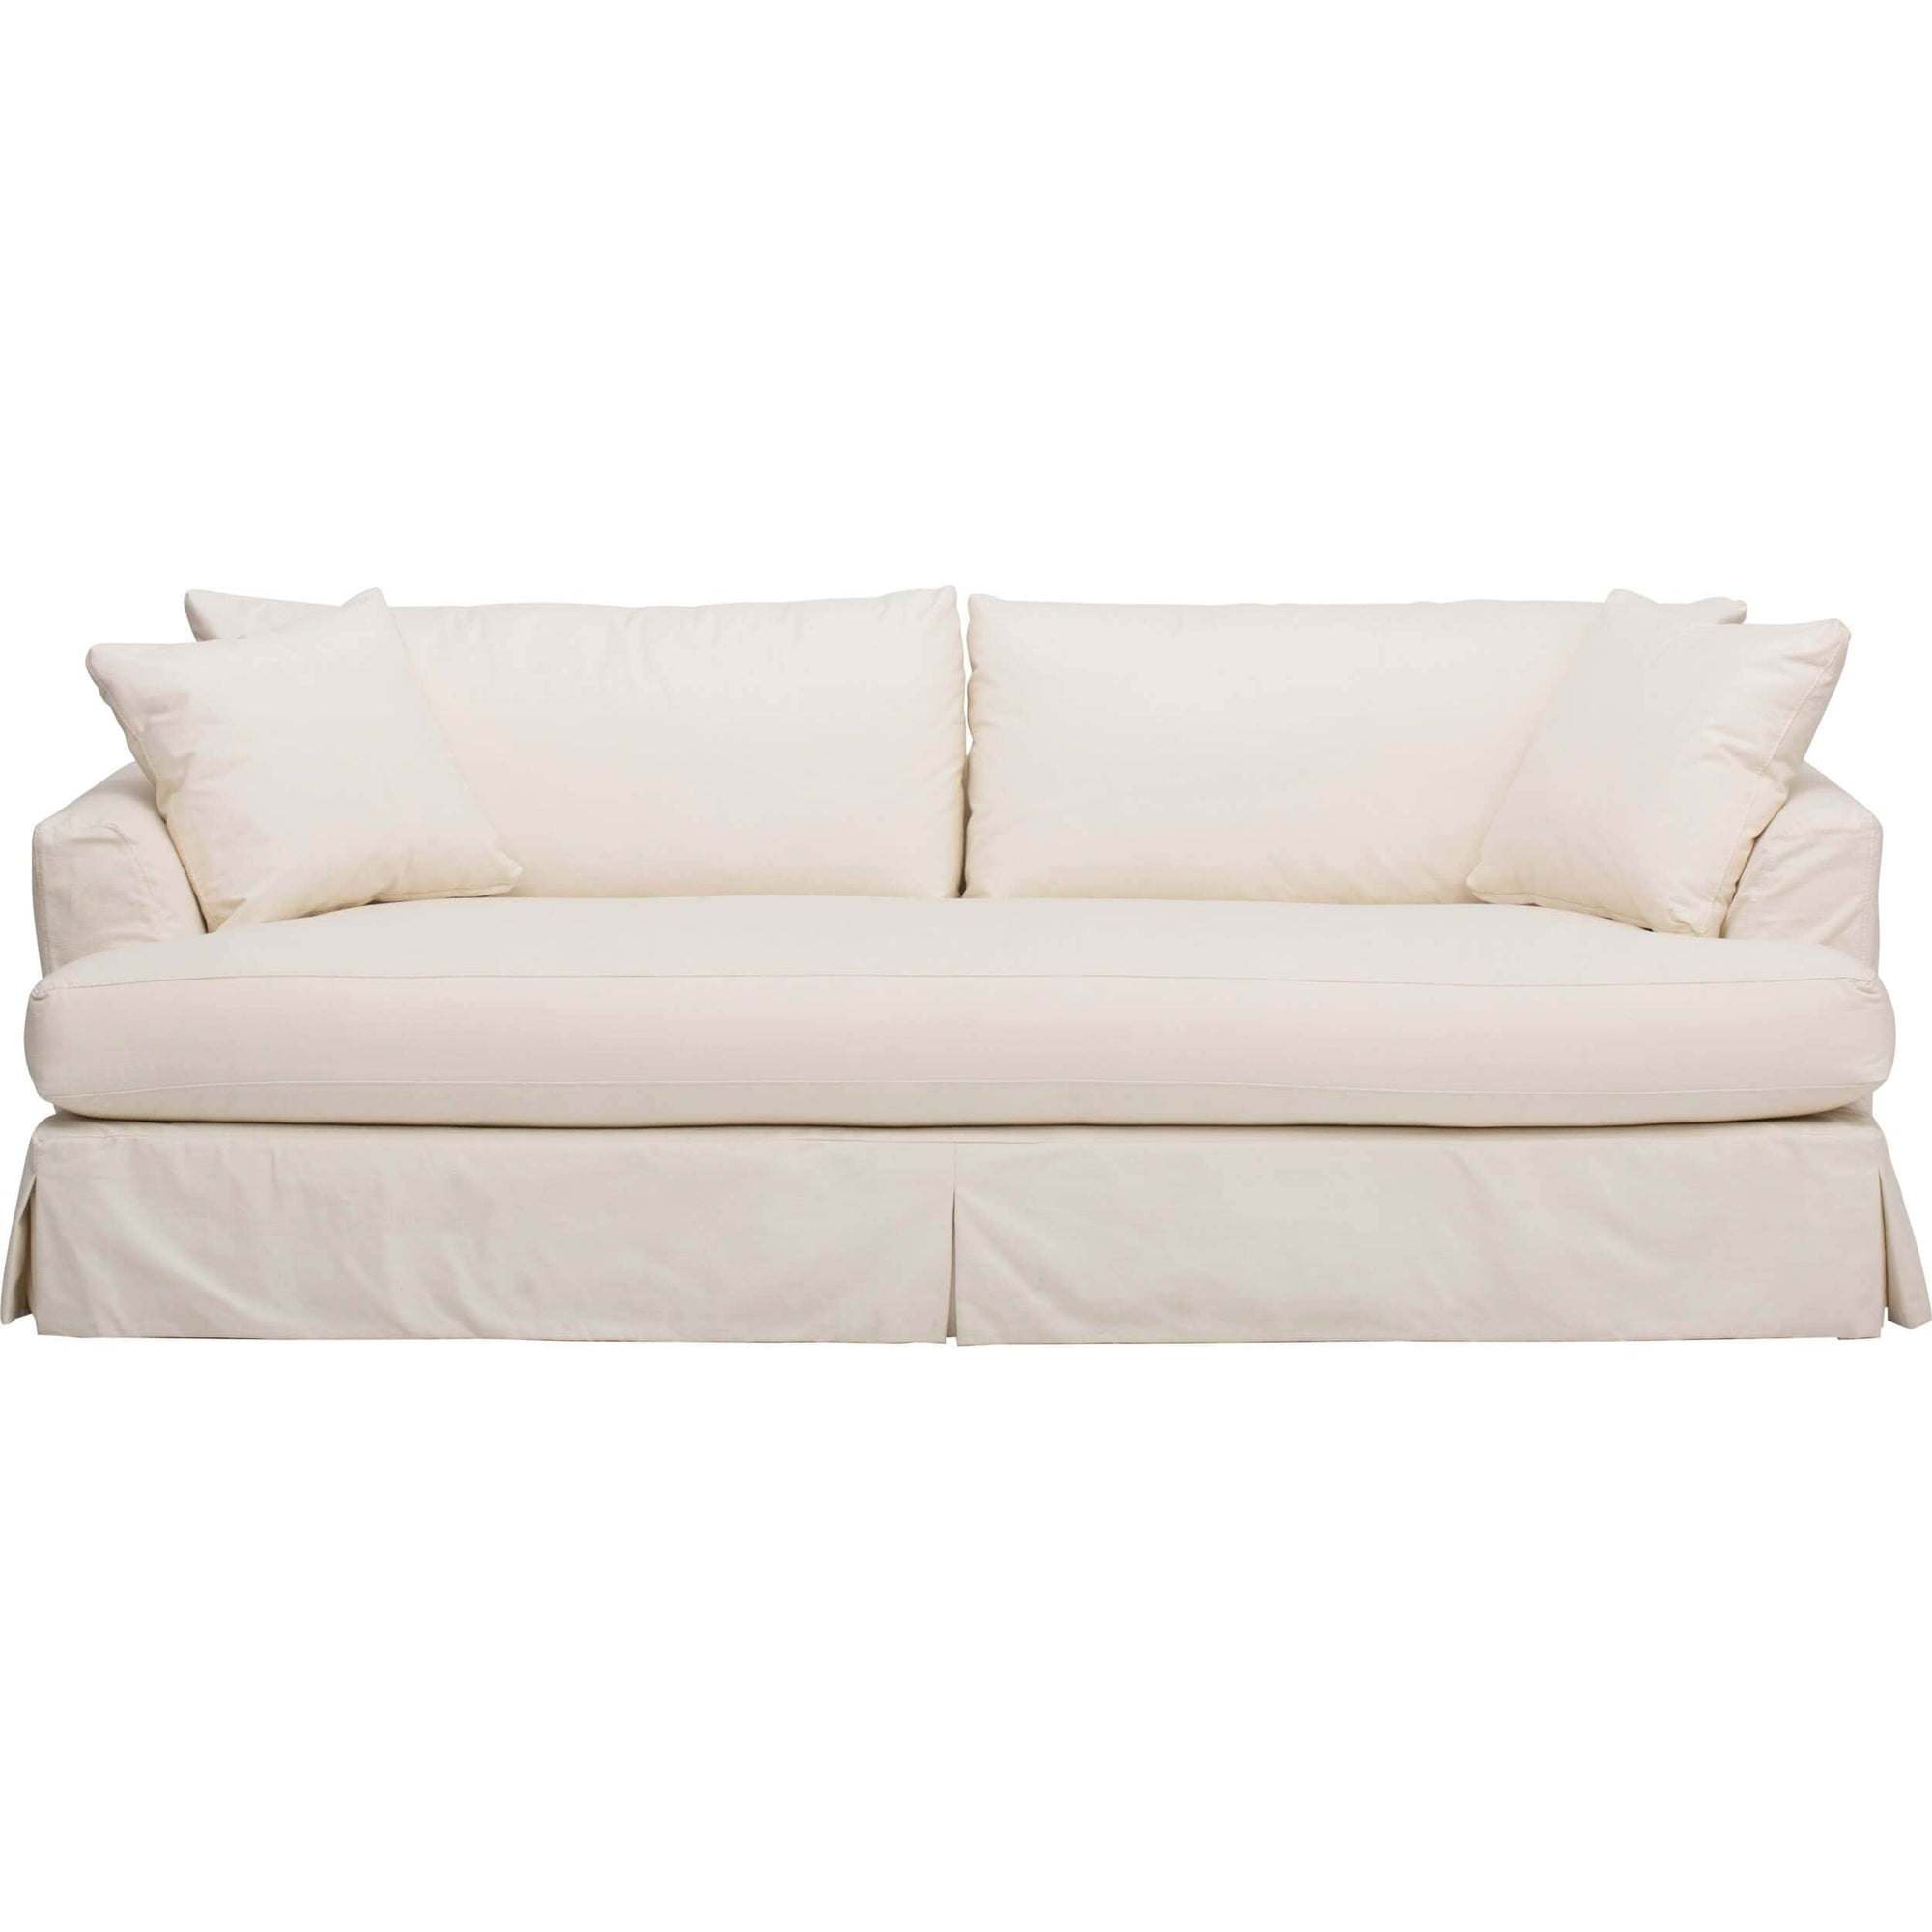 Aston Grand Slipcover Sofa Delilah White High Fashion Home